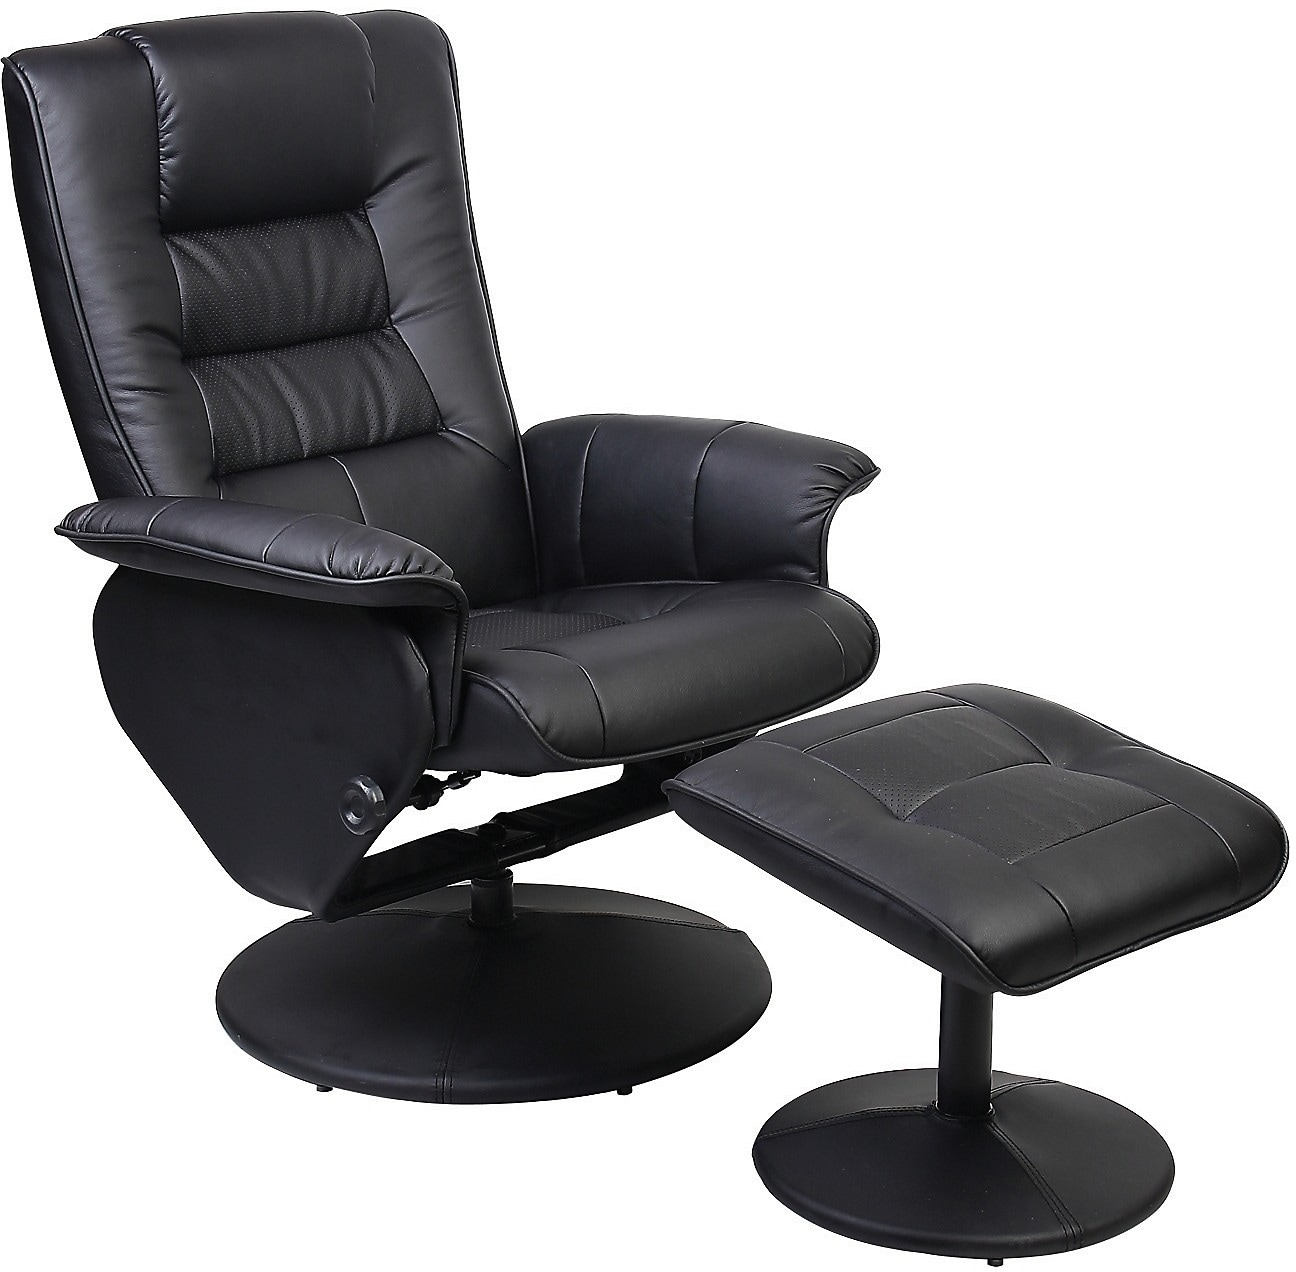 Duncan reclining chair w ottoman black the brick for Chair recliner